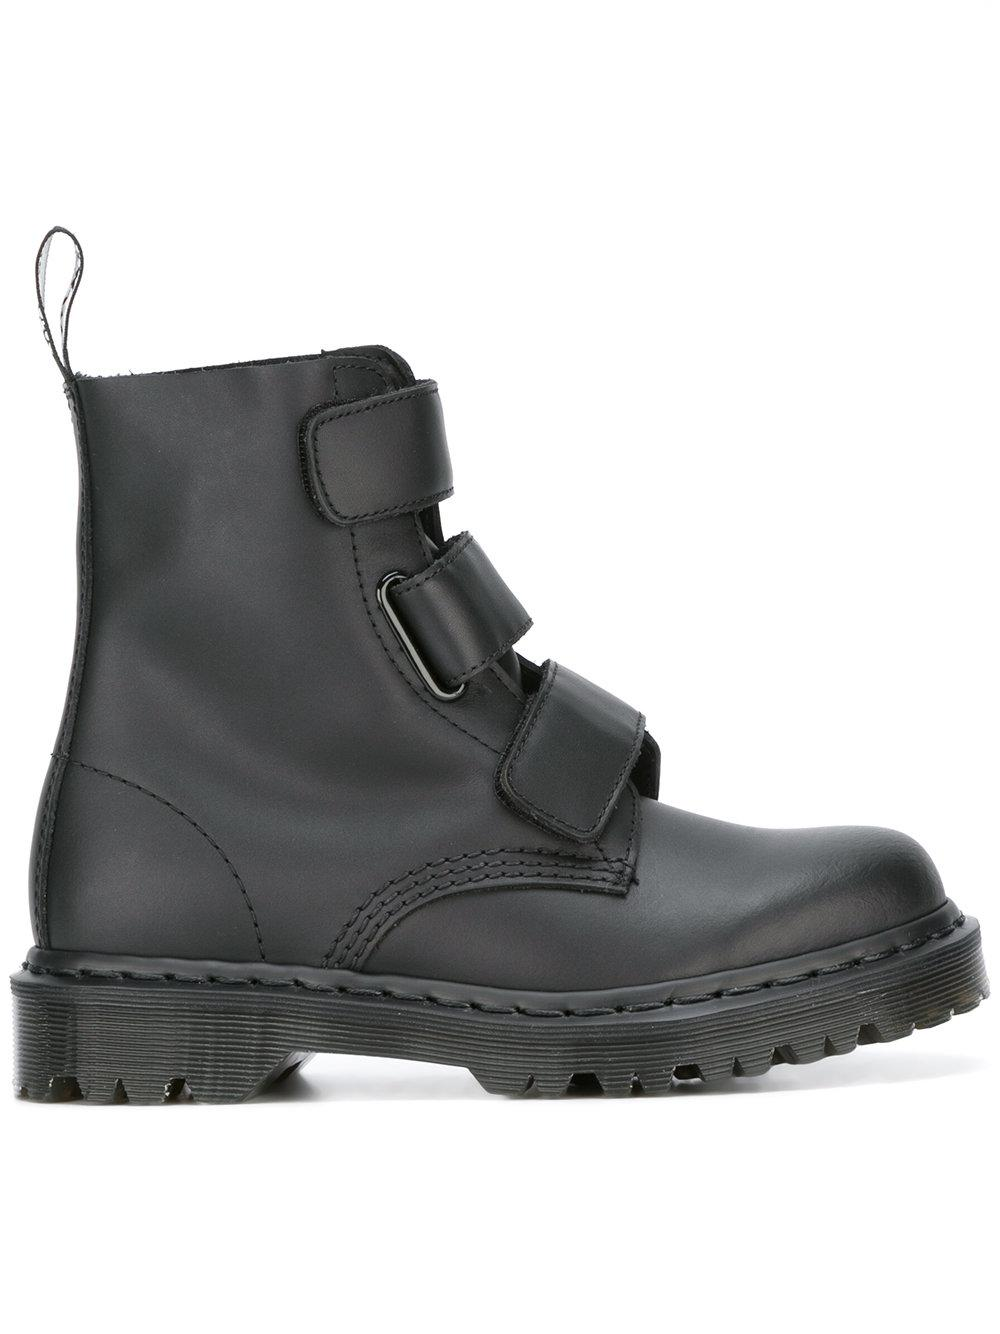 Lyst Dr Martens Coralia Boots in Black